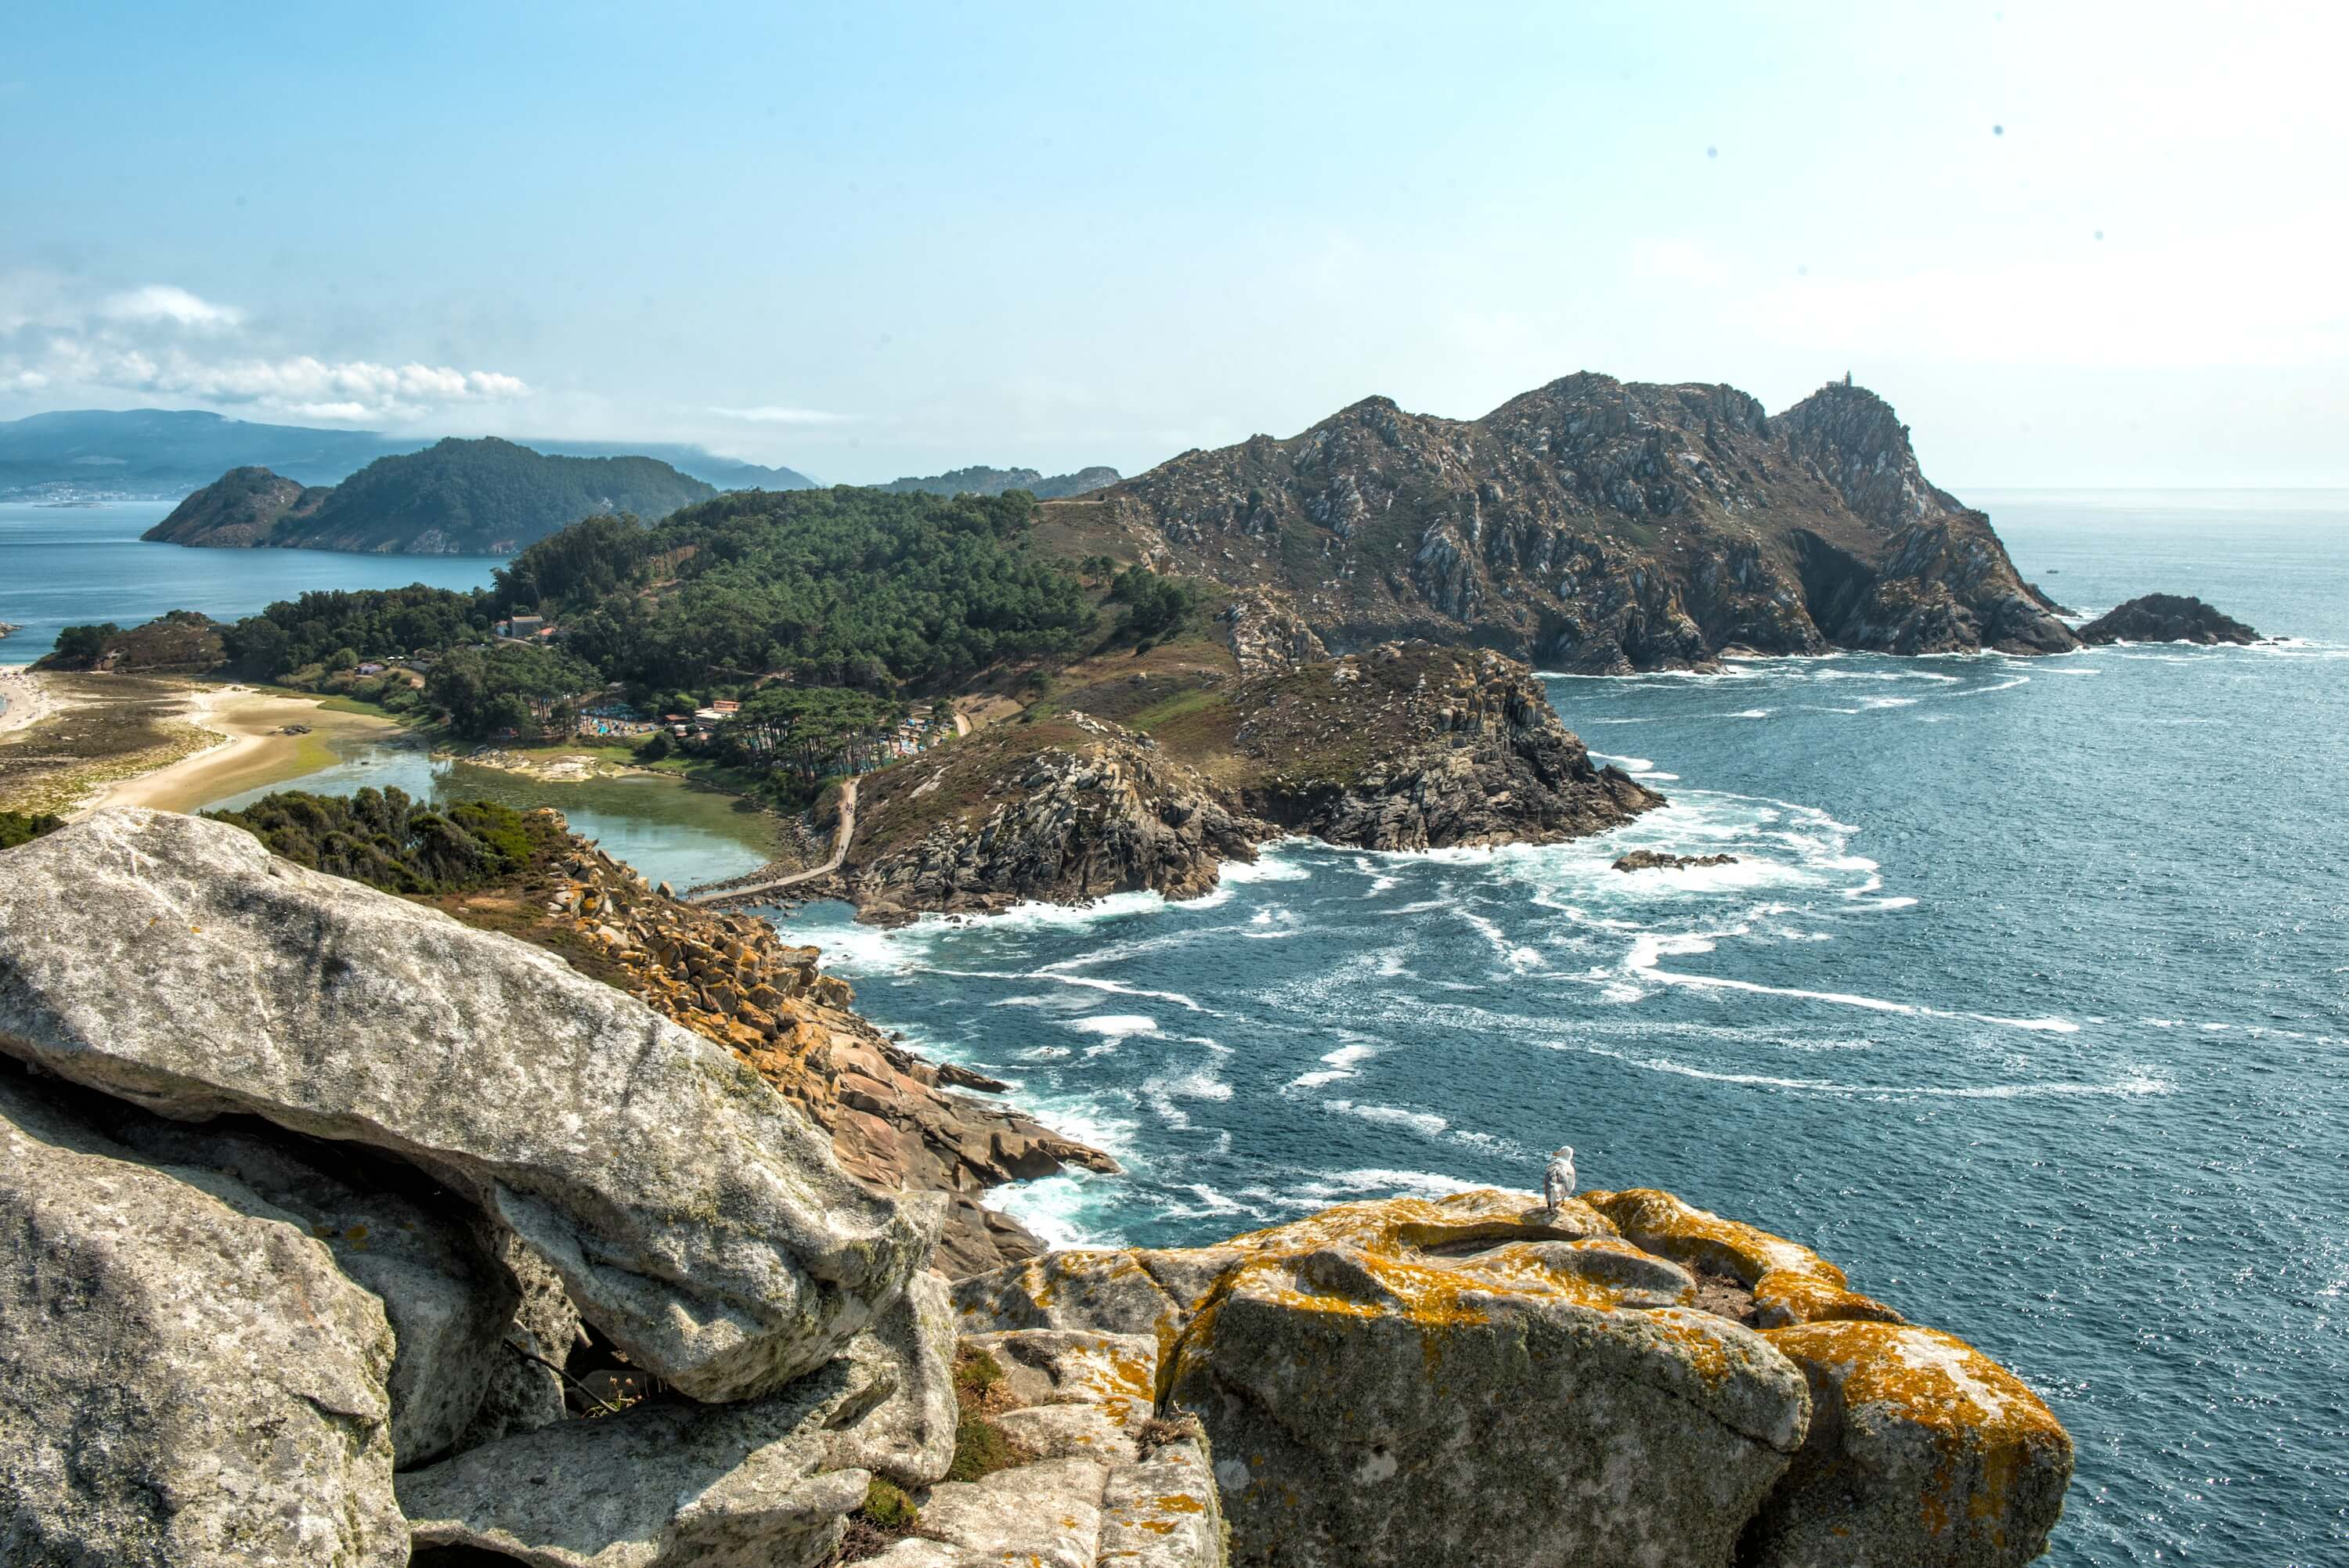 20 photos that will inspire you to visit the Cies Islands - Galicia Travel Spain Landscape of the Cies Islands